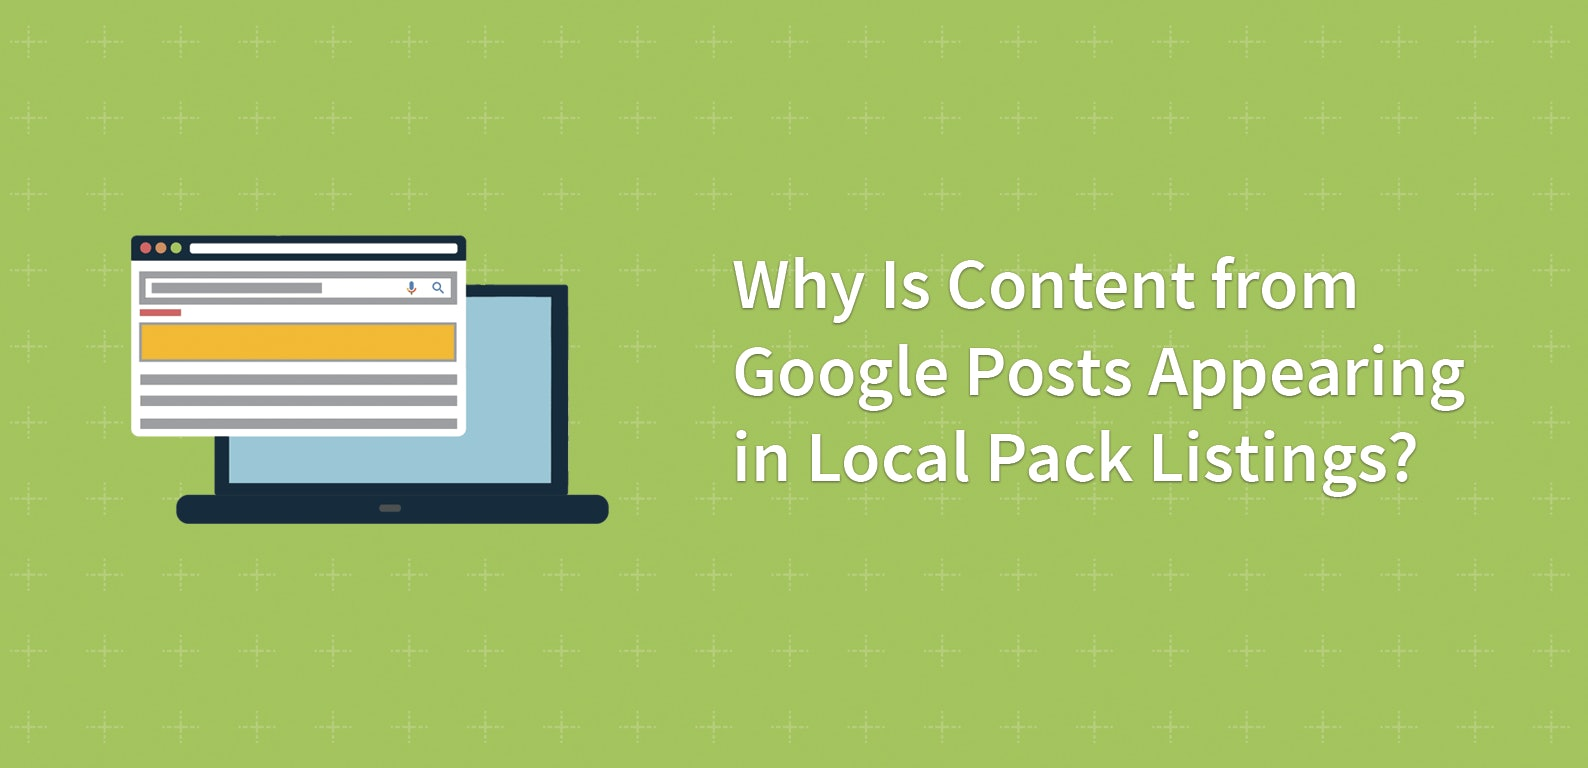 Why Is Content from Google Posts Appearing in Local Pack Listings?